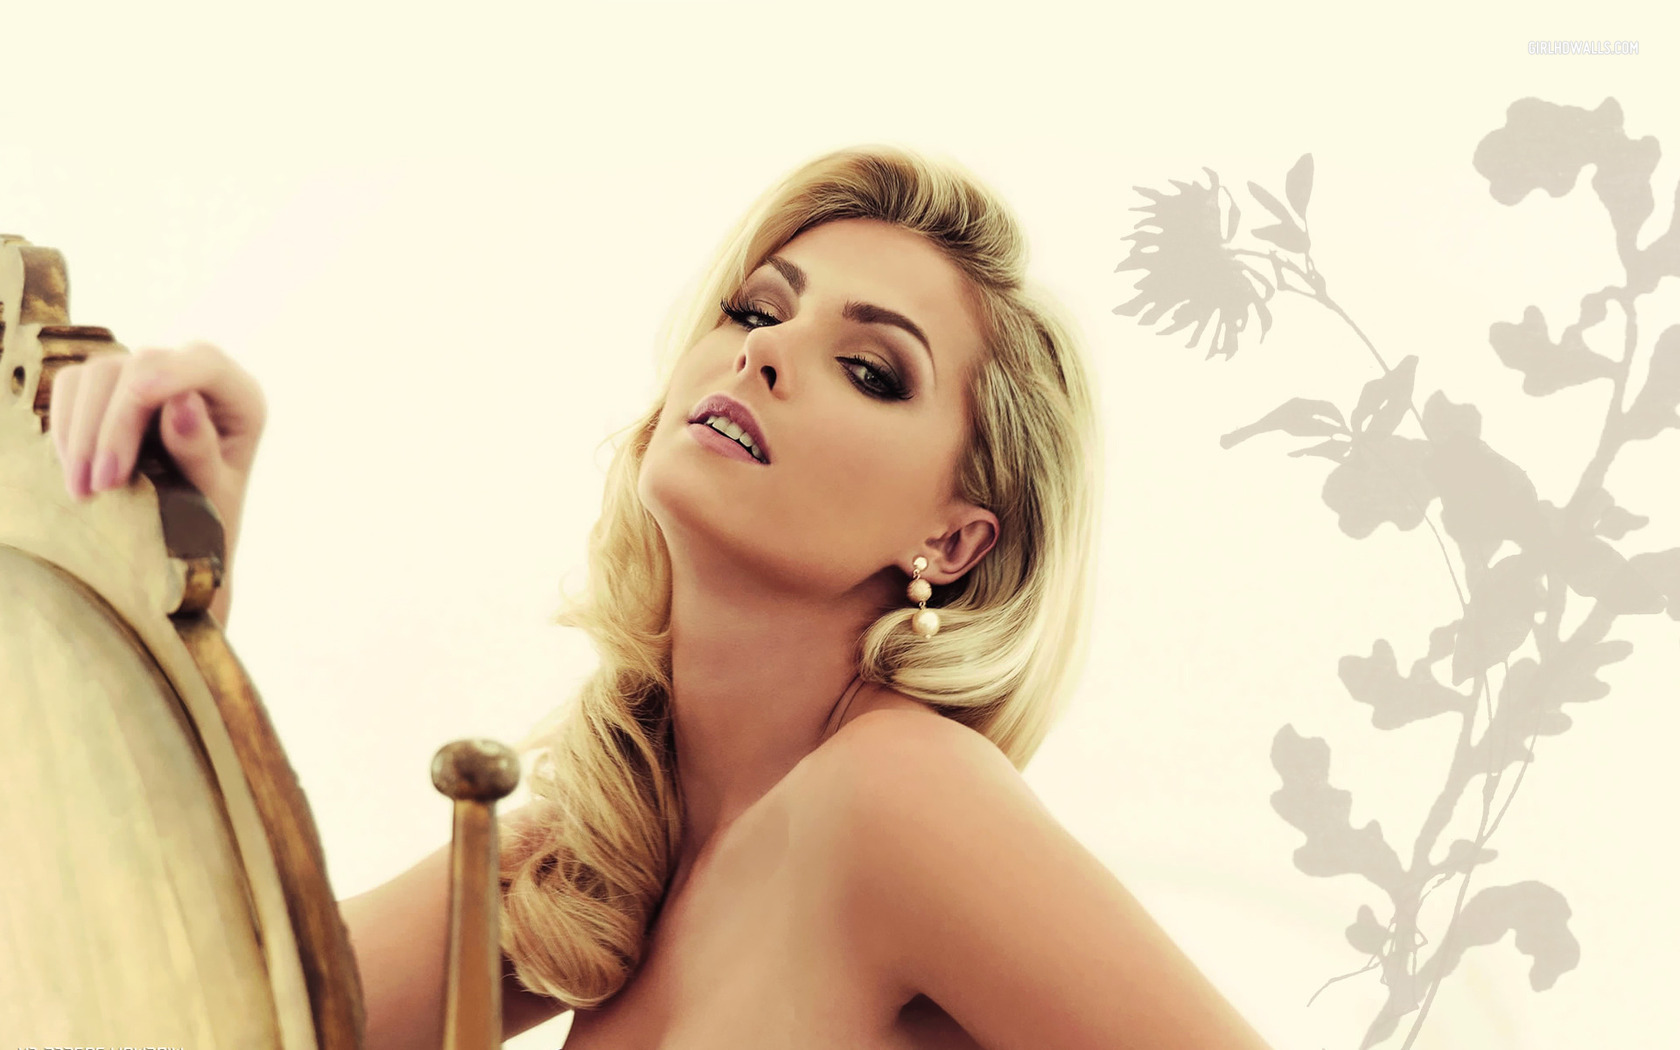 Ana hickmann wallpaper hd full hd pictures - Ana wallpaper ...